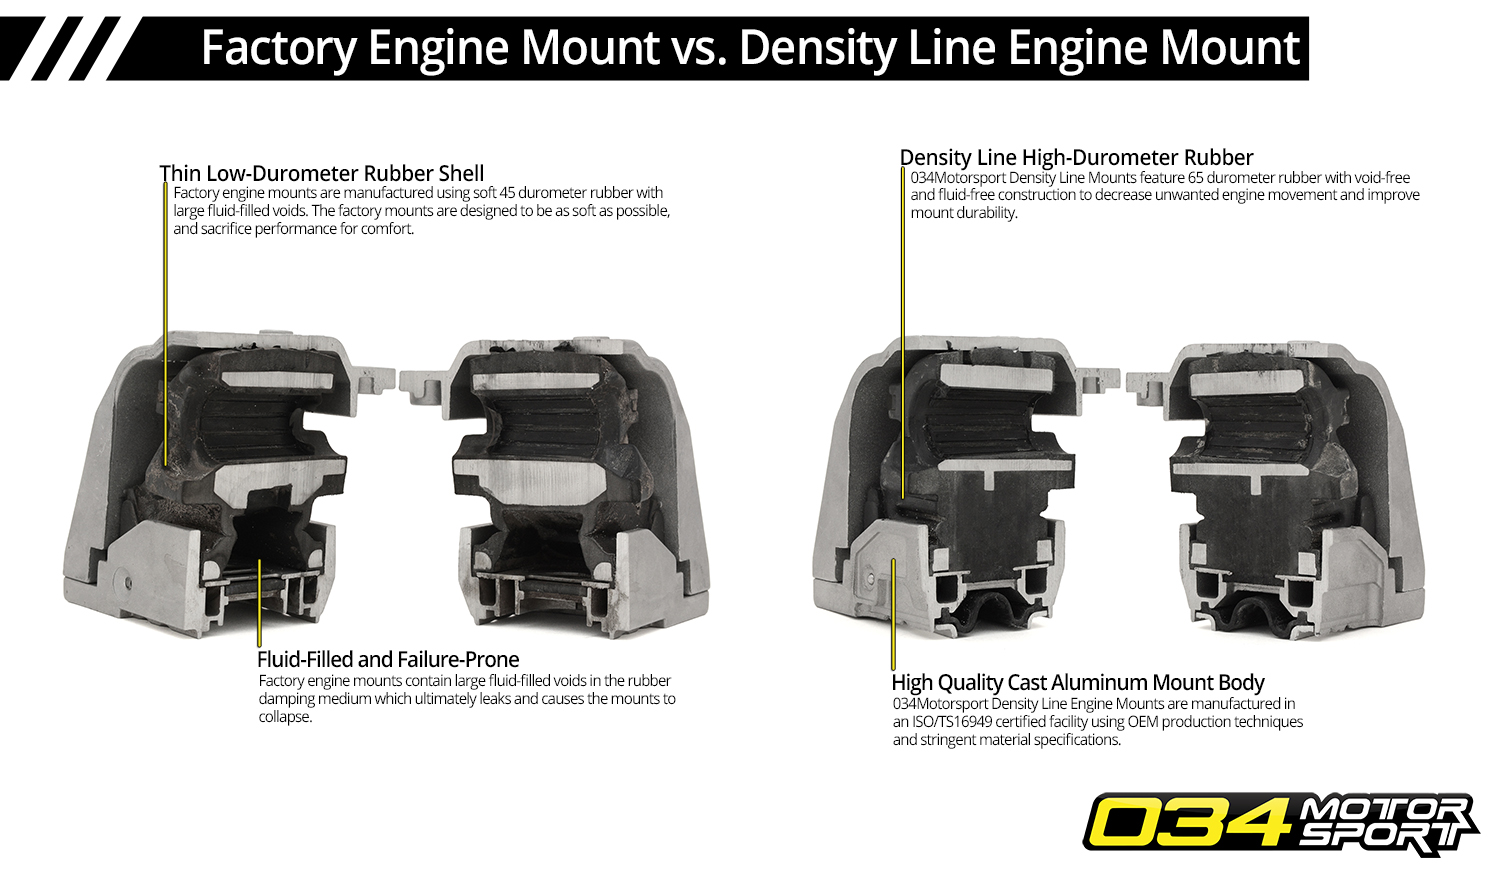 034Motorsport Density Line Mounts for MkII Audi TTRS vs. Factory Mounts